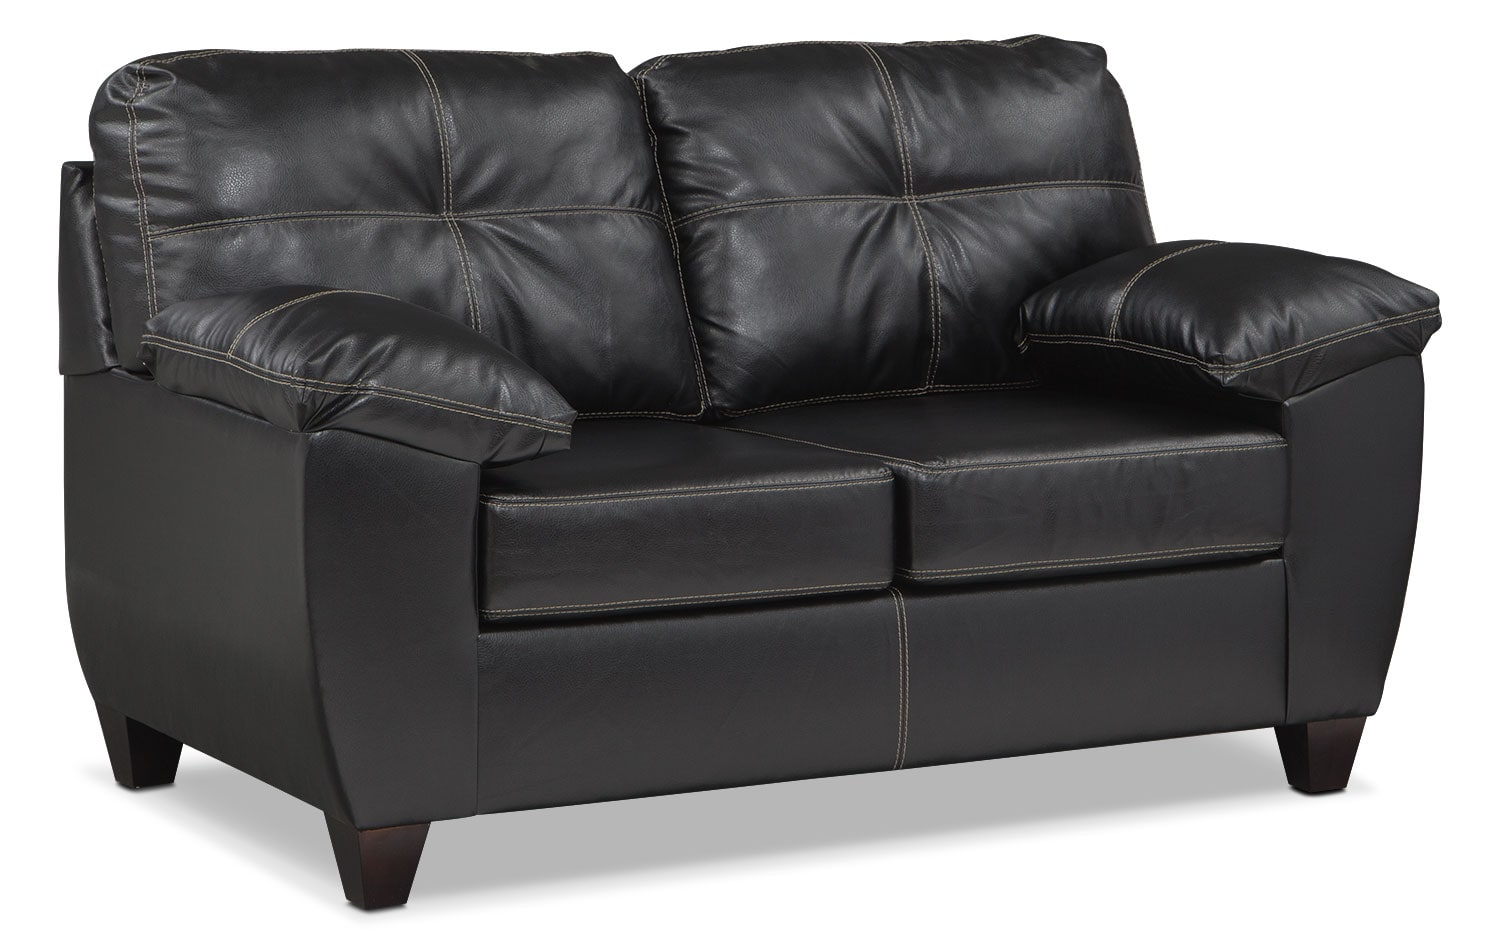 Living Room Furniture - Rialto Loveseat - Onyx